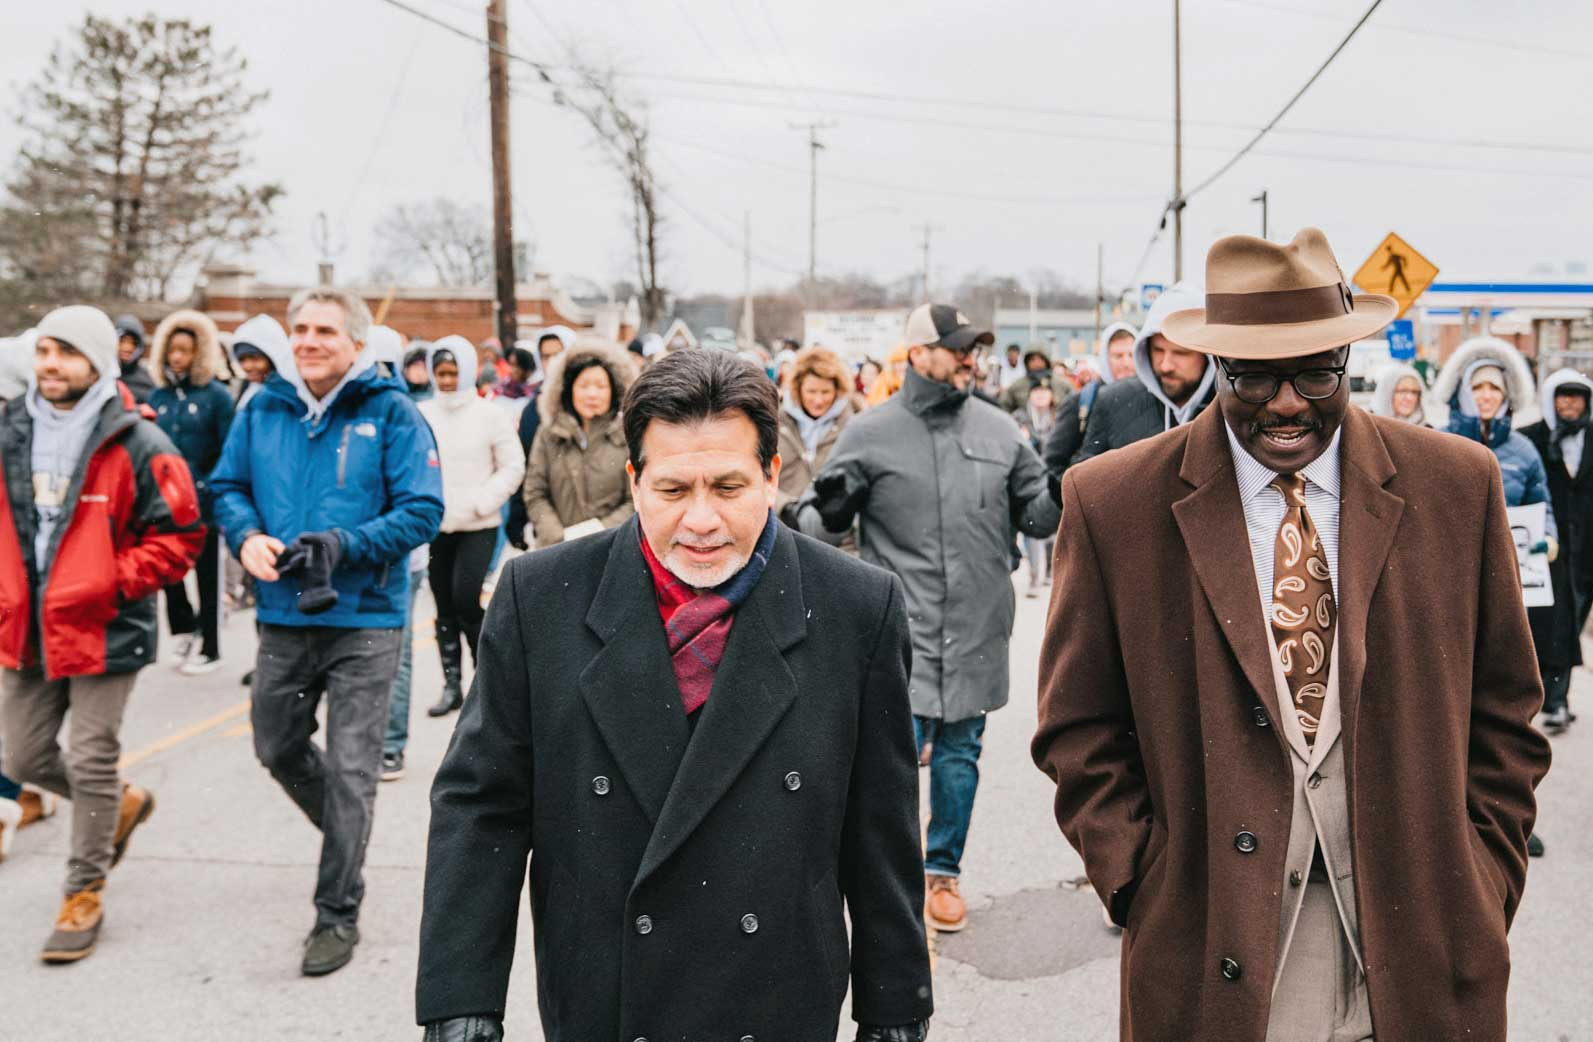 MLK Day March - Alberto Gonzales and Bob Kendrick